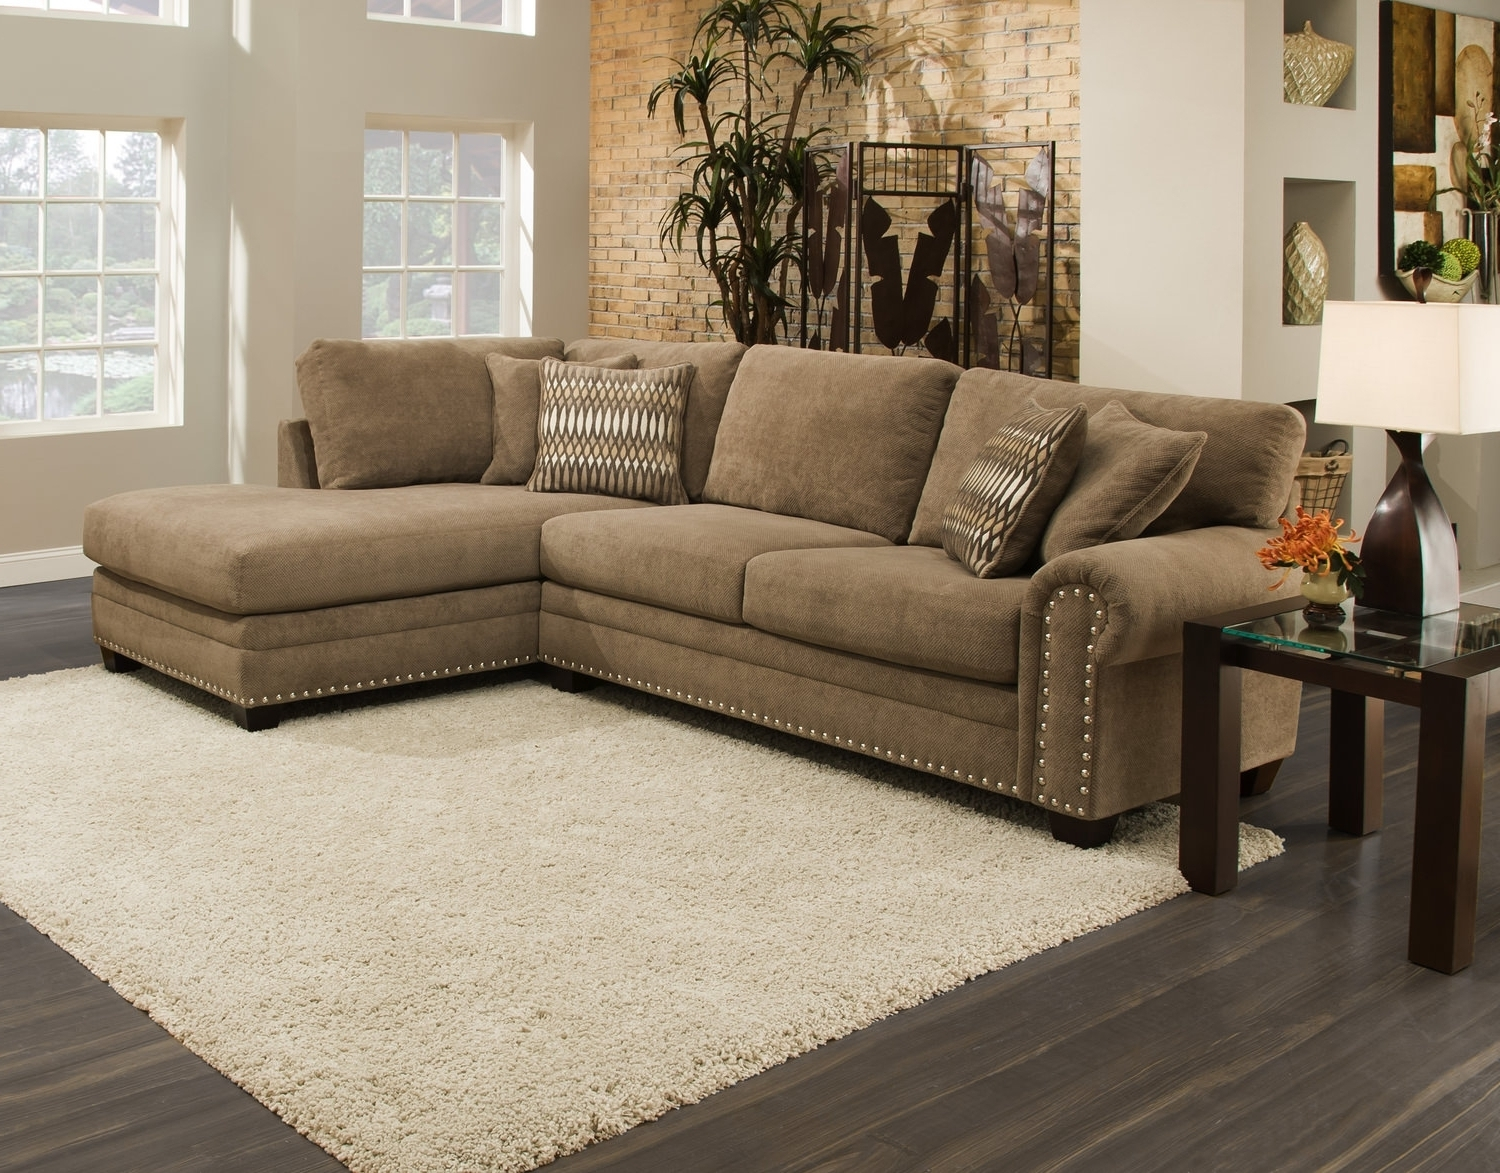 Sectional Sofas Duluth Mn • Sectional Sofa In Newest Duluth Mn Sectional Sofas (View 8 of 20)